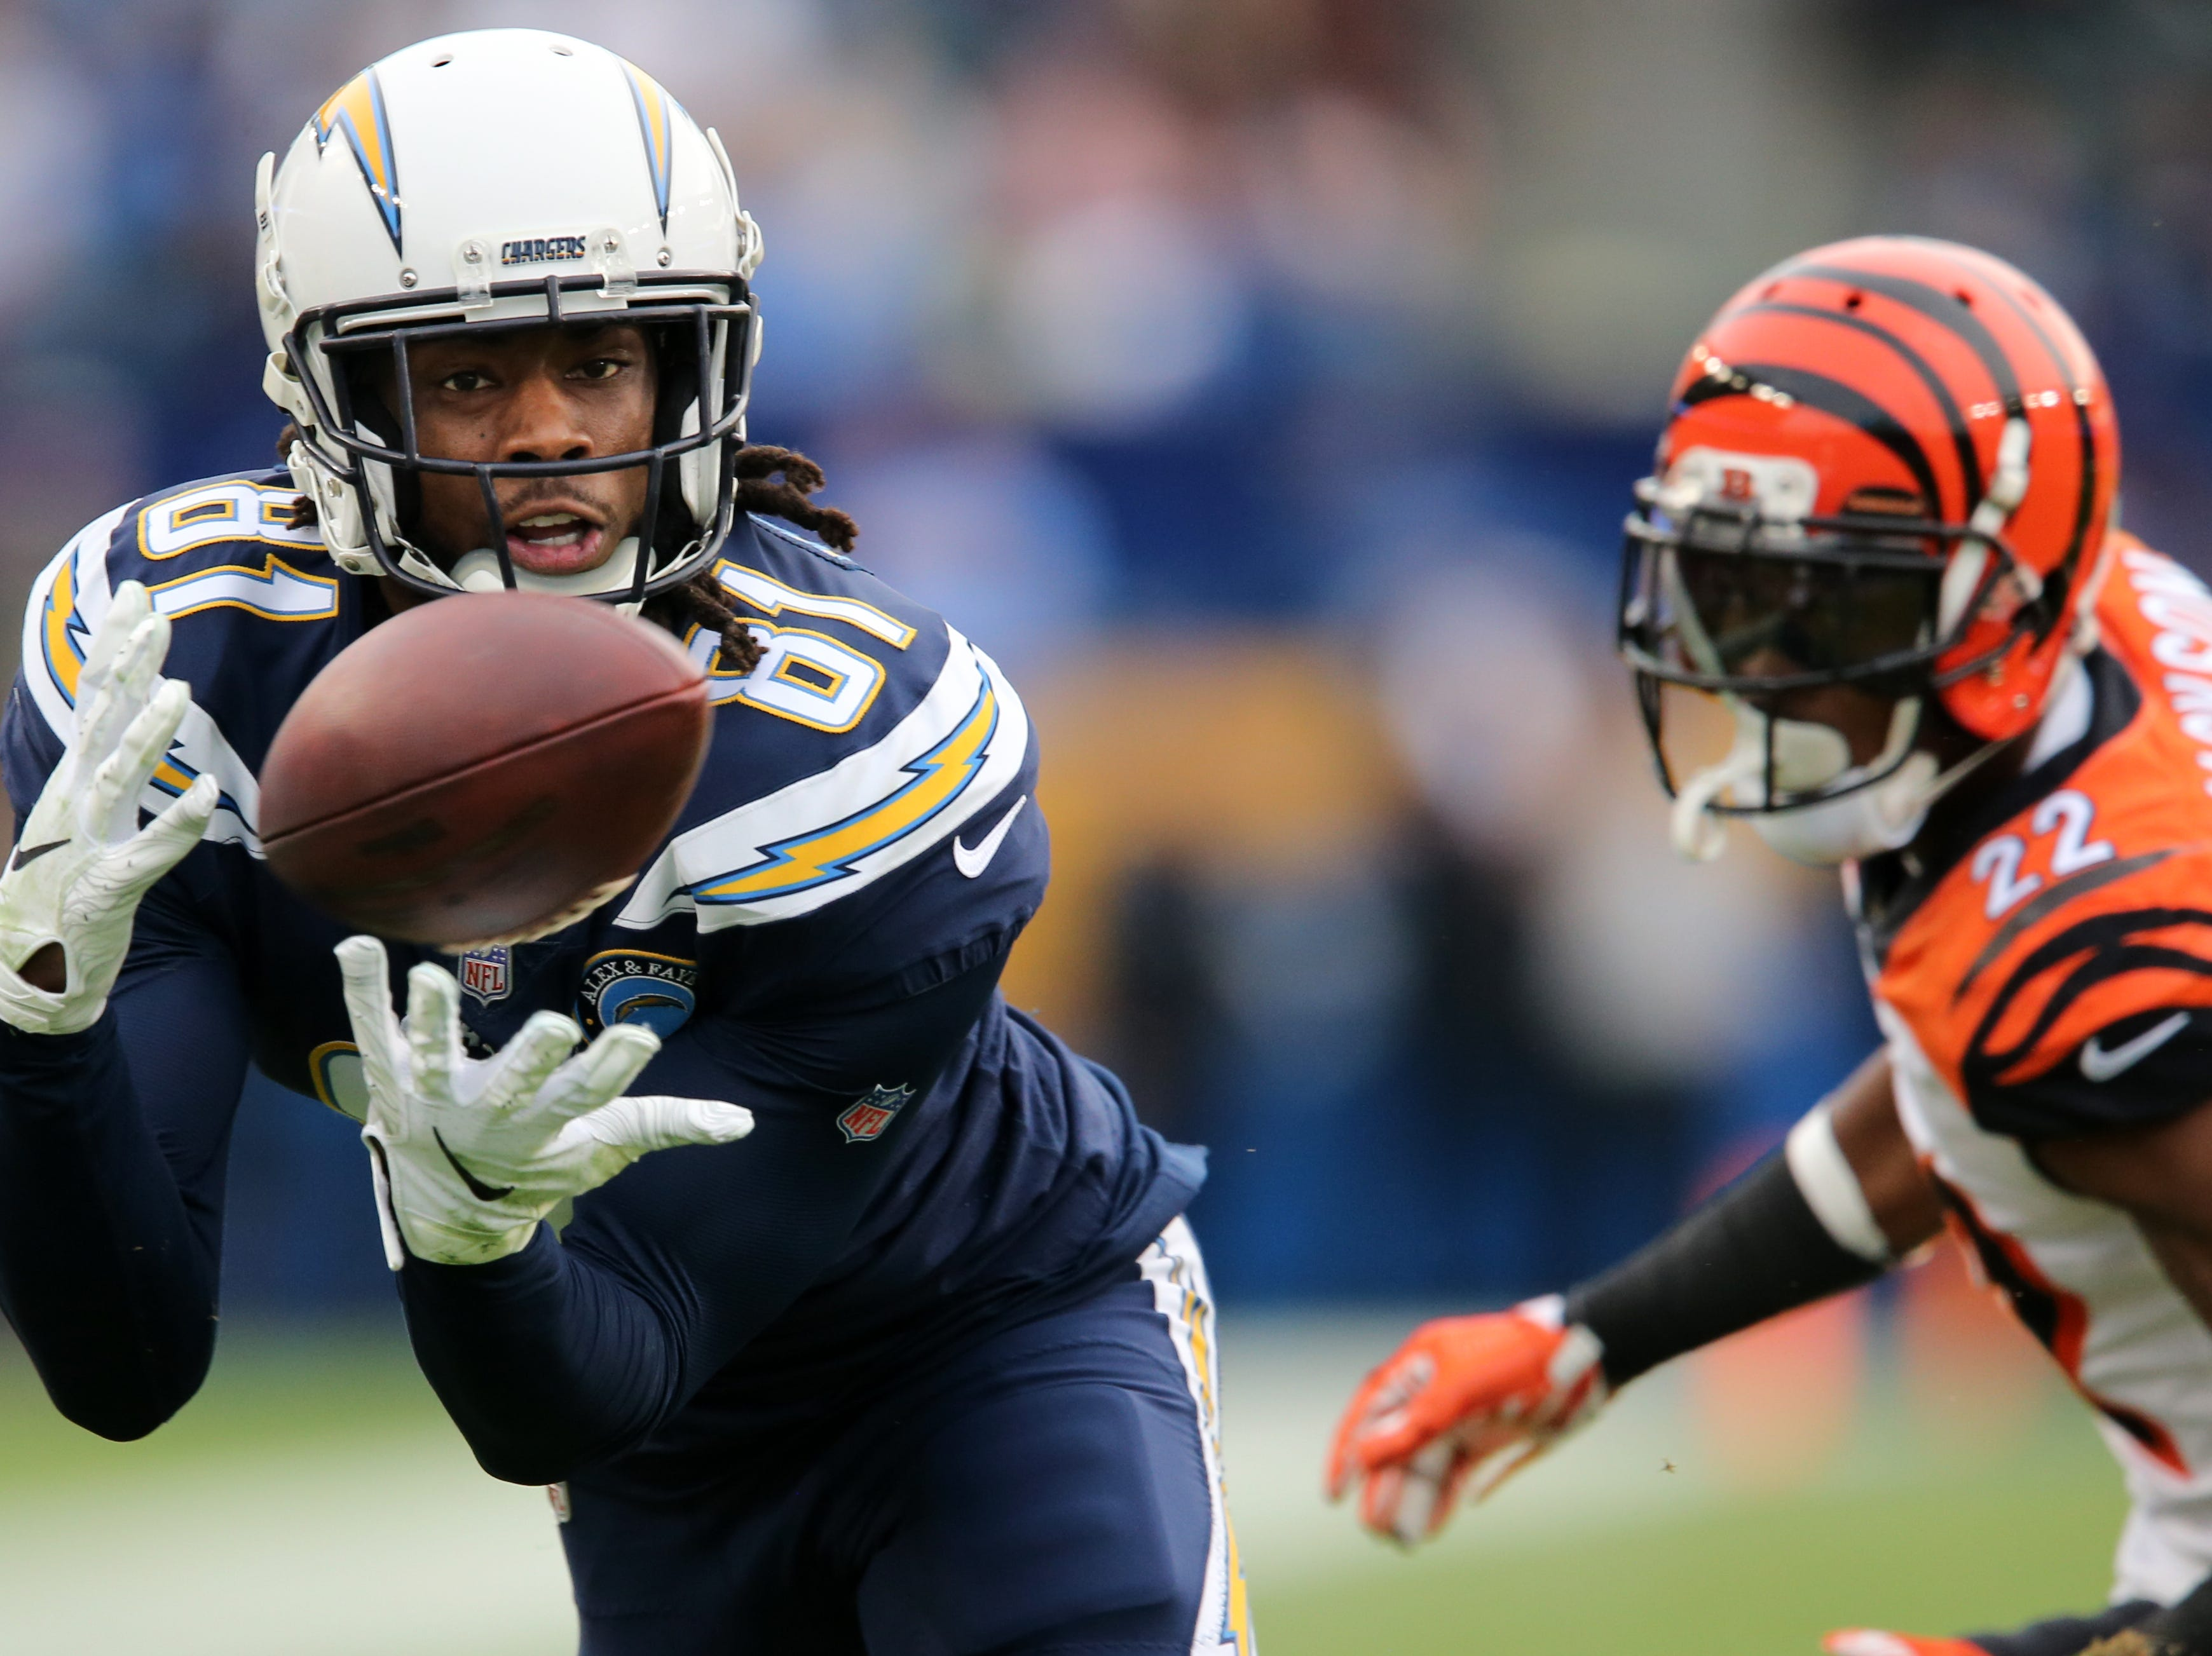 Los Angeles Chargers wide receiver Mike Williams (81) completes a catch as Cincinnati Bengals cornerback William Jackson (22) defends in the XX quarter of a Week 14 NFL football game against the Los Angeles Chargers, Sunday, Dec. 9, 2018, at StubHub Center in Carson, California.